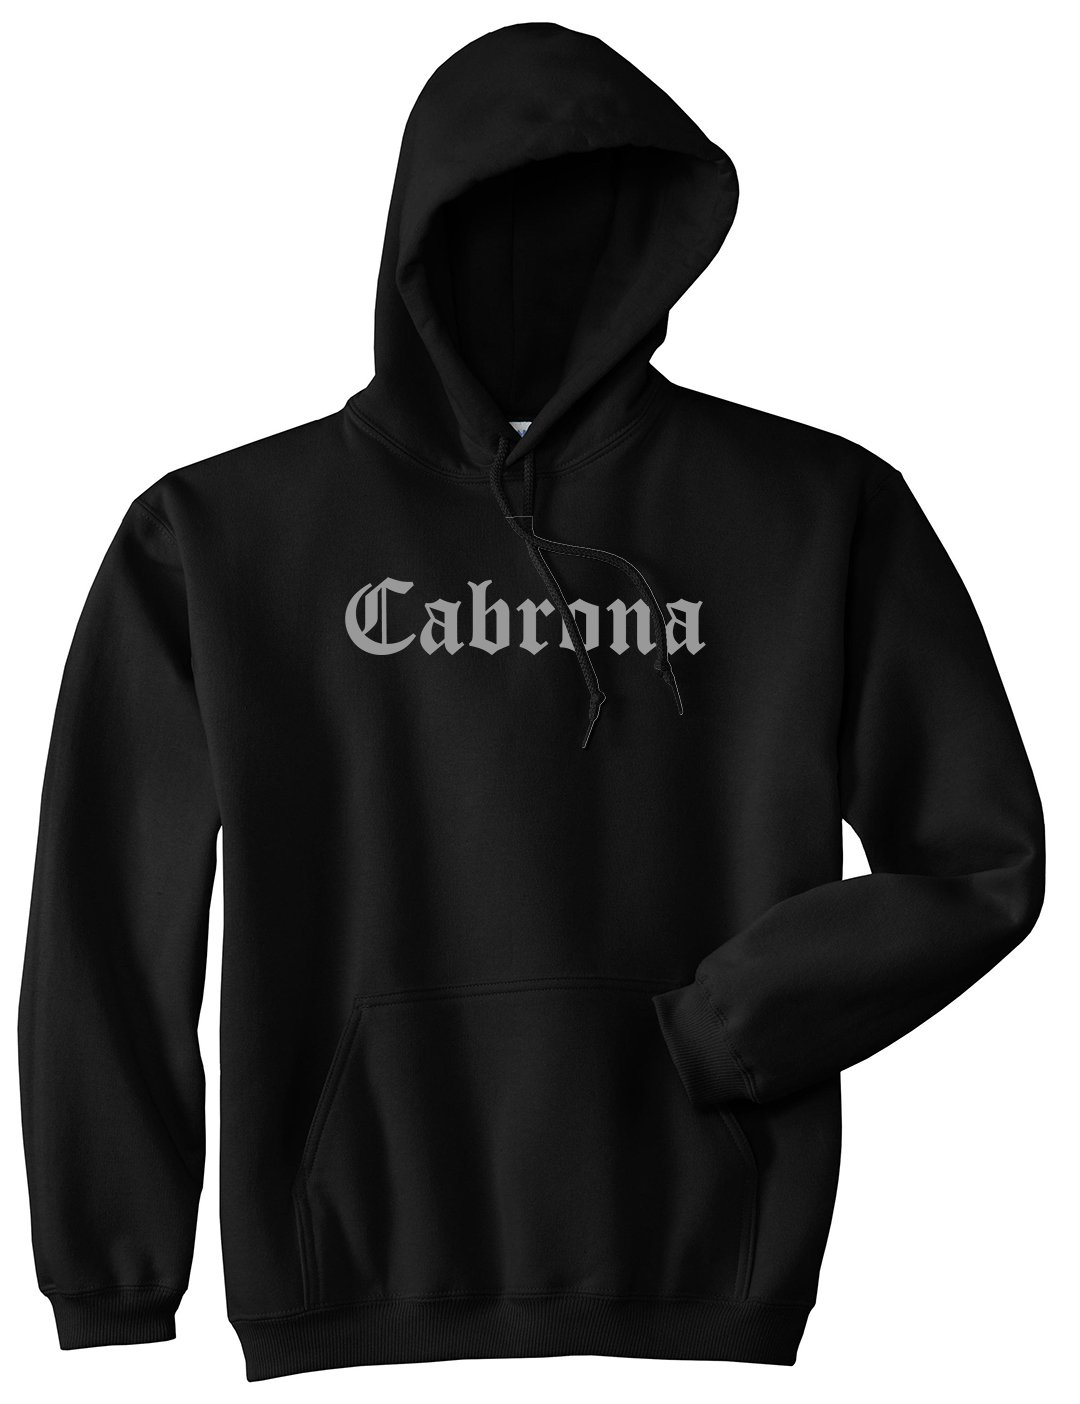 Kings Of NY Cabrona Spanish Mens Pullover Hoodie Small Black